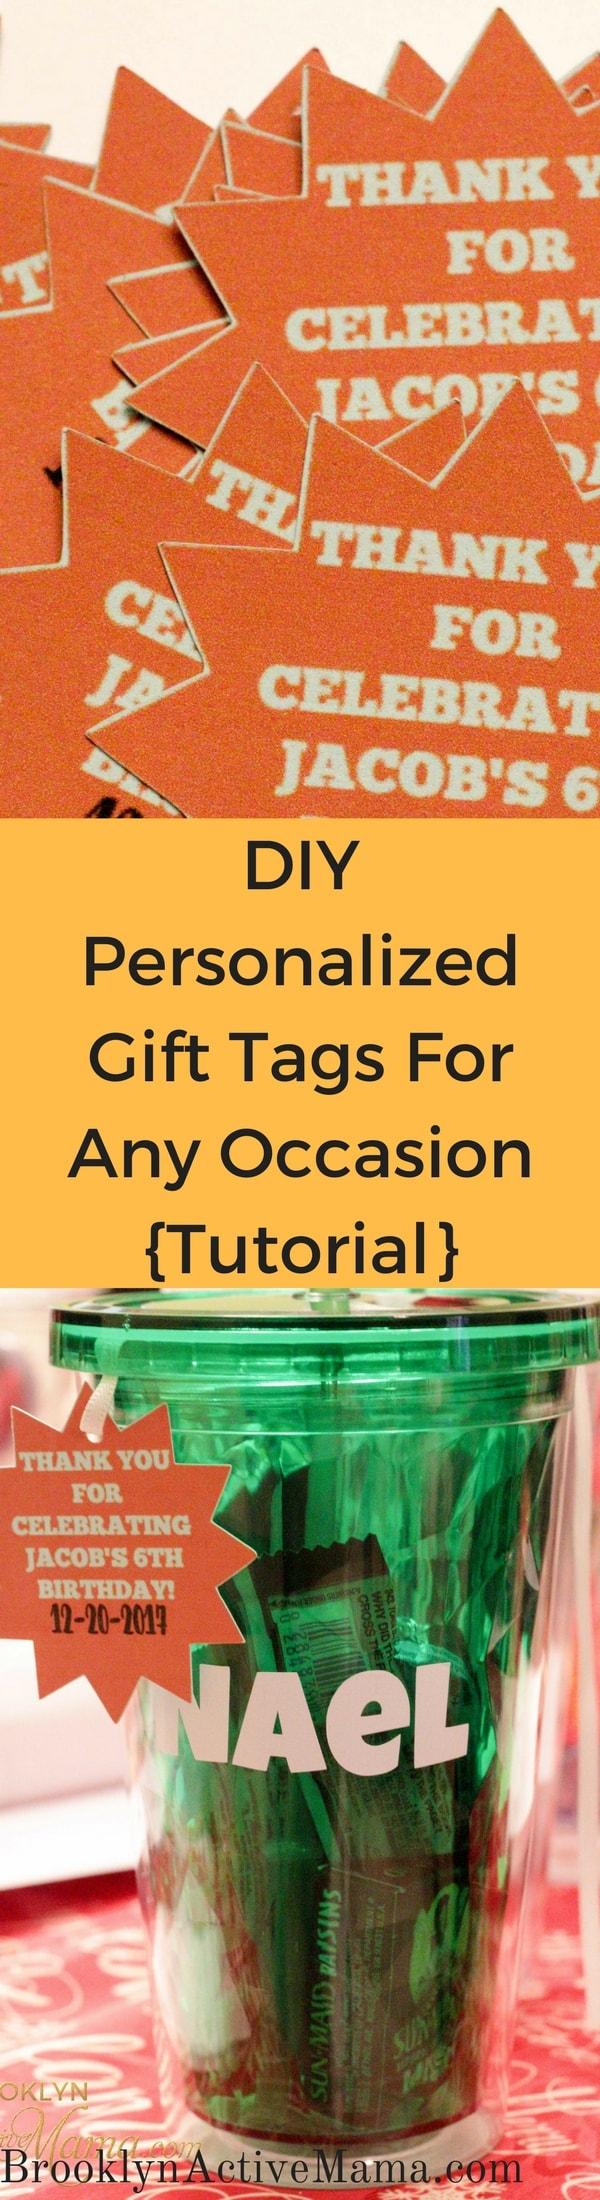 DIY Personalized Gift Tags For Any Occasion {Tutorial} Looking to jazz up those party bags and gifts? Check out this easy DIY craft that will take no time and leave a fun impression on your guests!